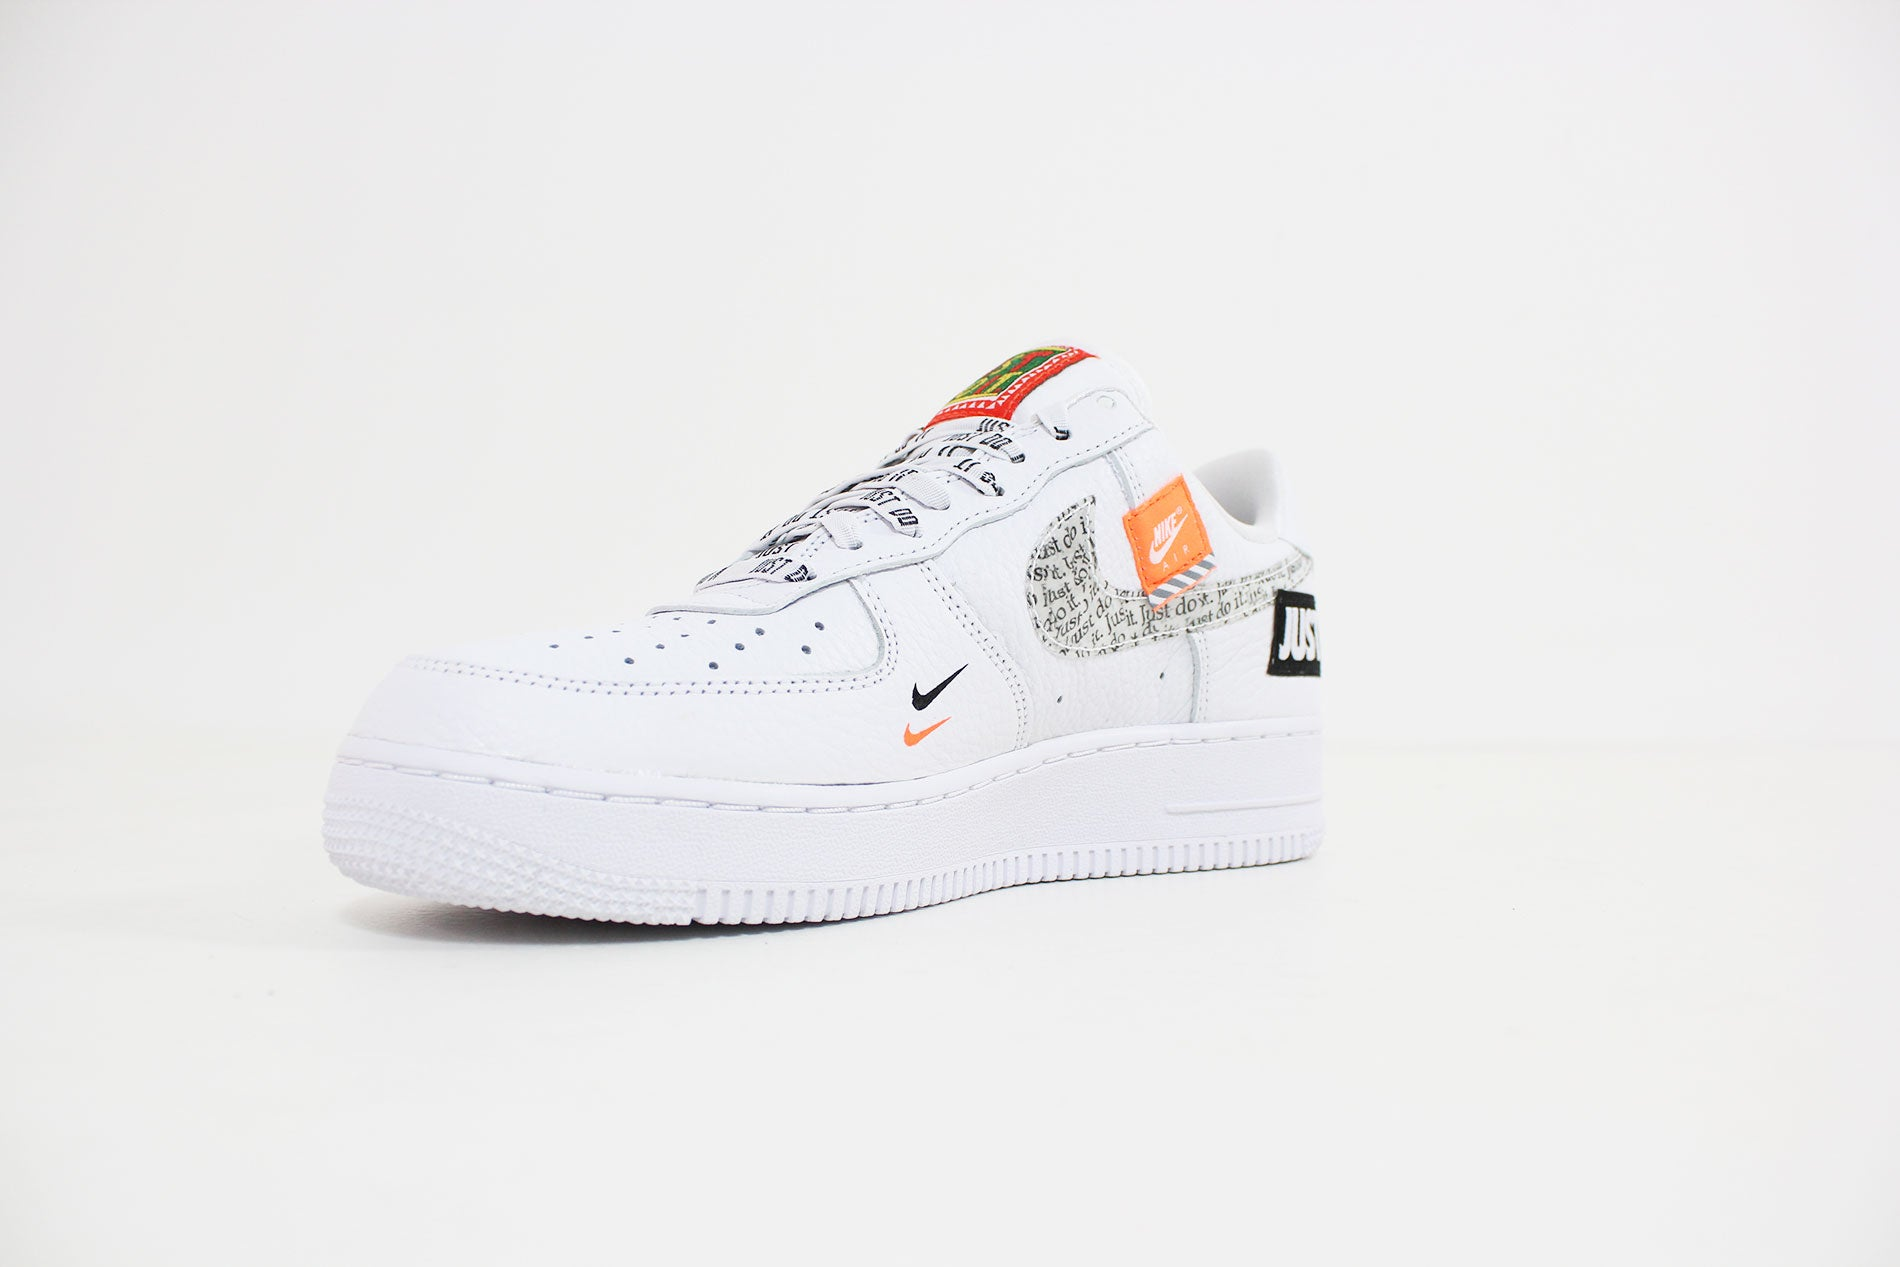 ... uk nike air force 1 premium jdi white white black total orange ar7719  100 f9e73 c5e99 3458fc995